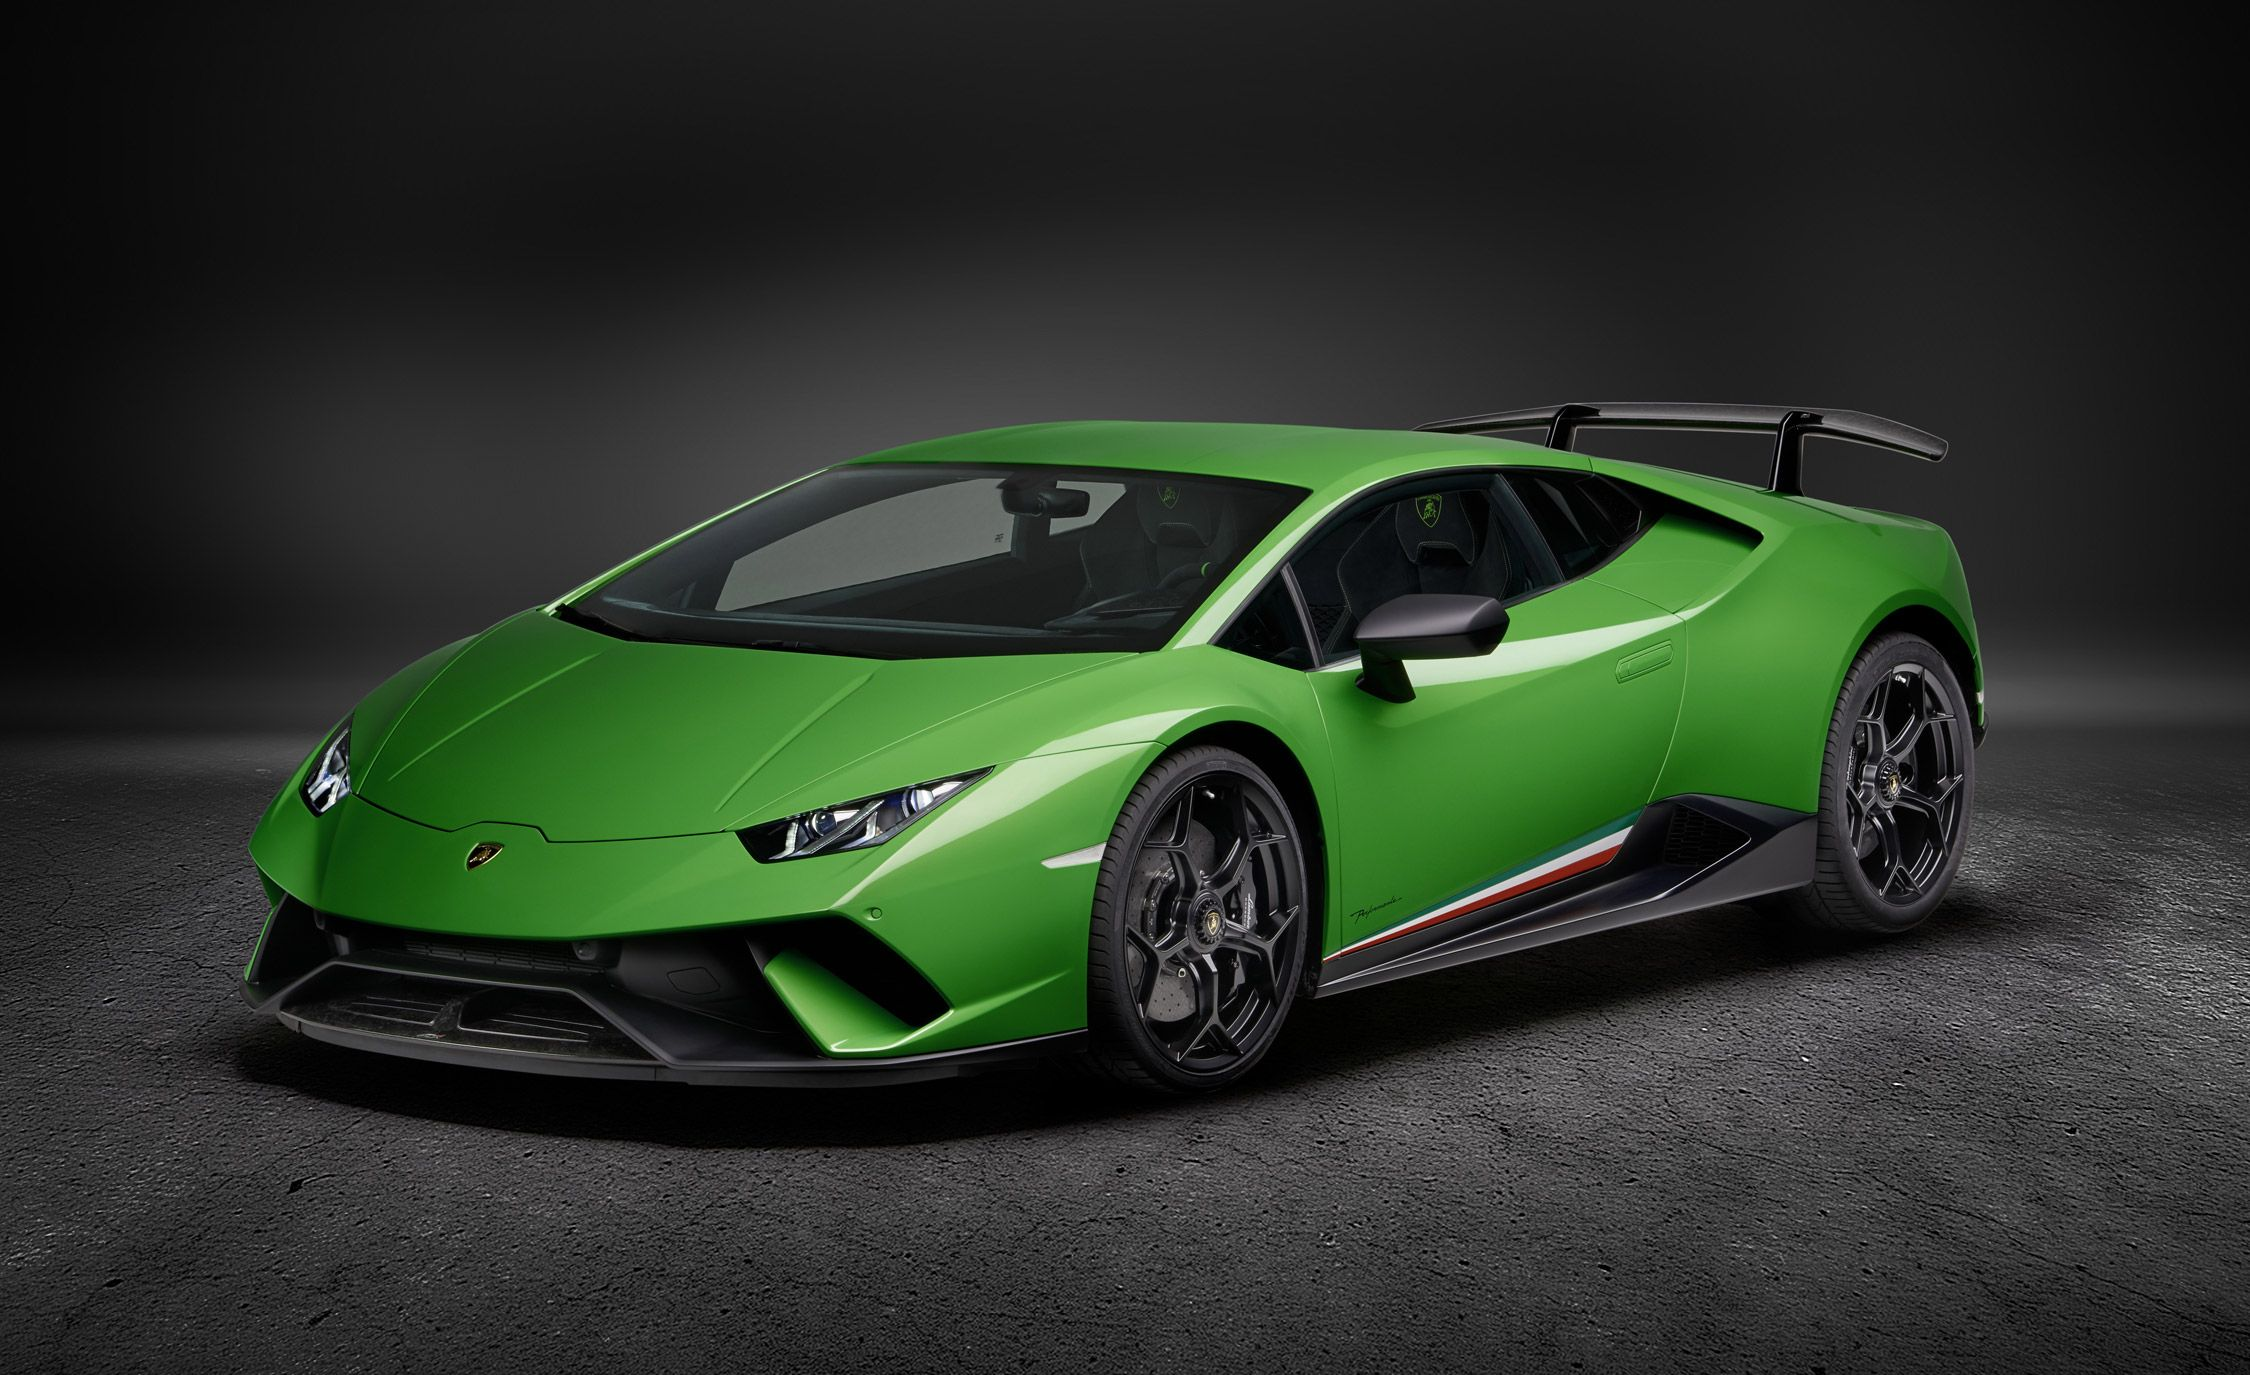 2018 Lamborghini Huracan Performante: More Power and Aero Trickery